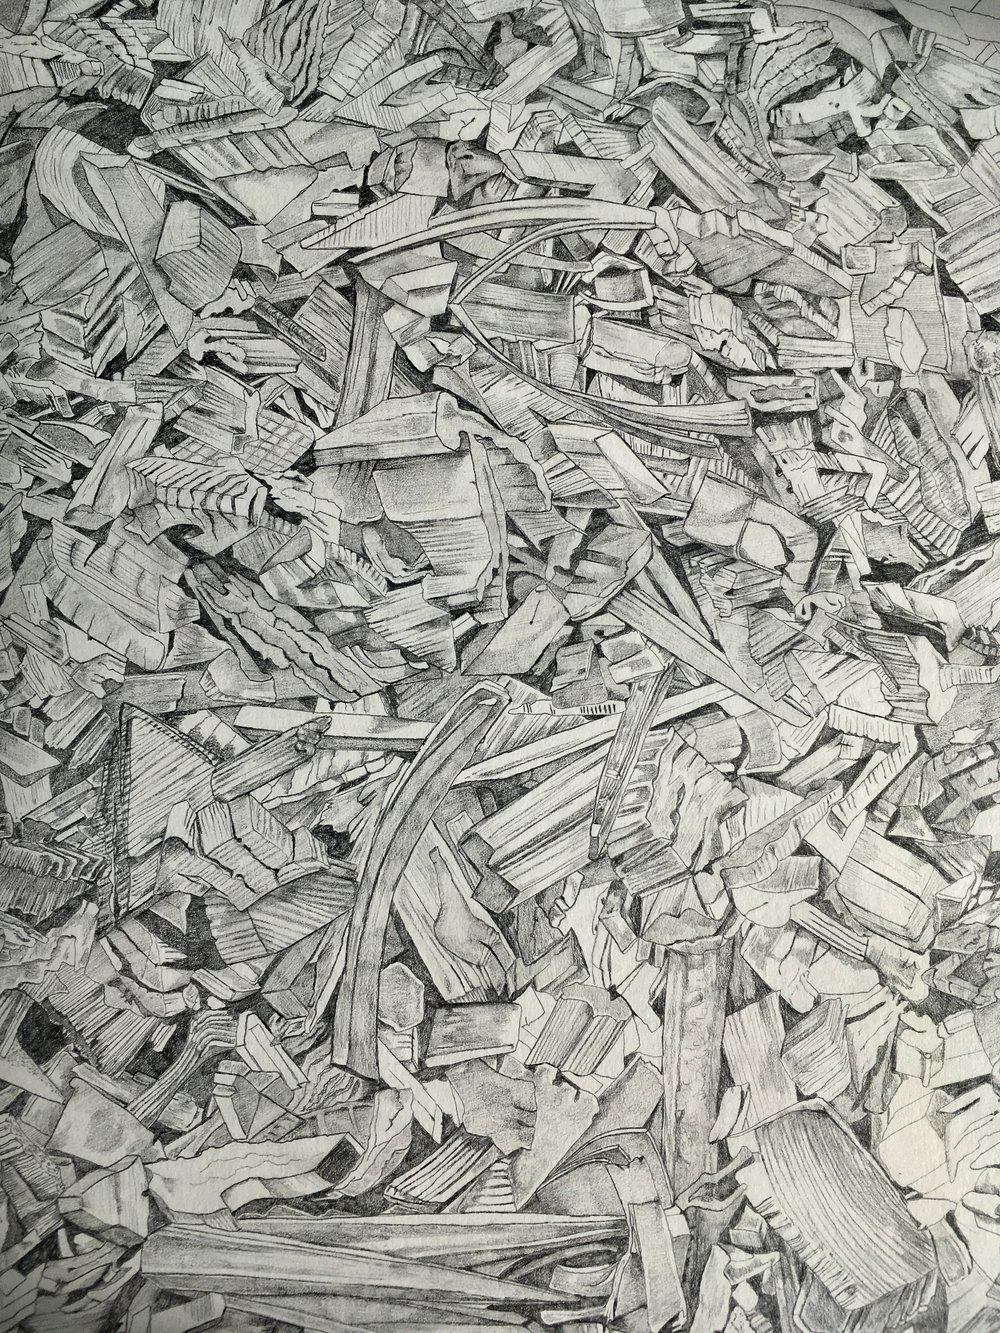 The Wood Pile, a wonderfully detailed and meticulous drawing of biofuel wood-chips, named after Robert Frost's poem, The Wood Pile.